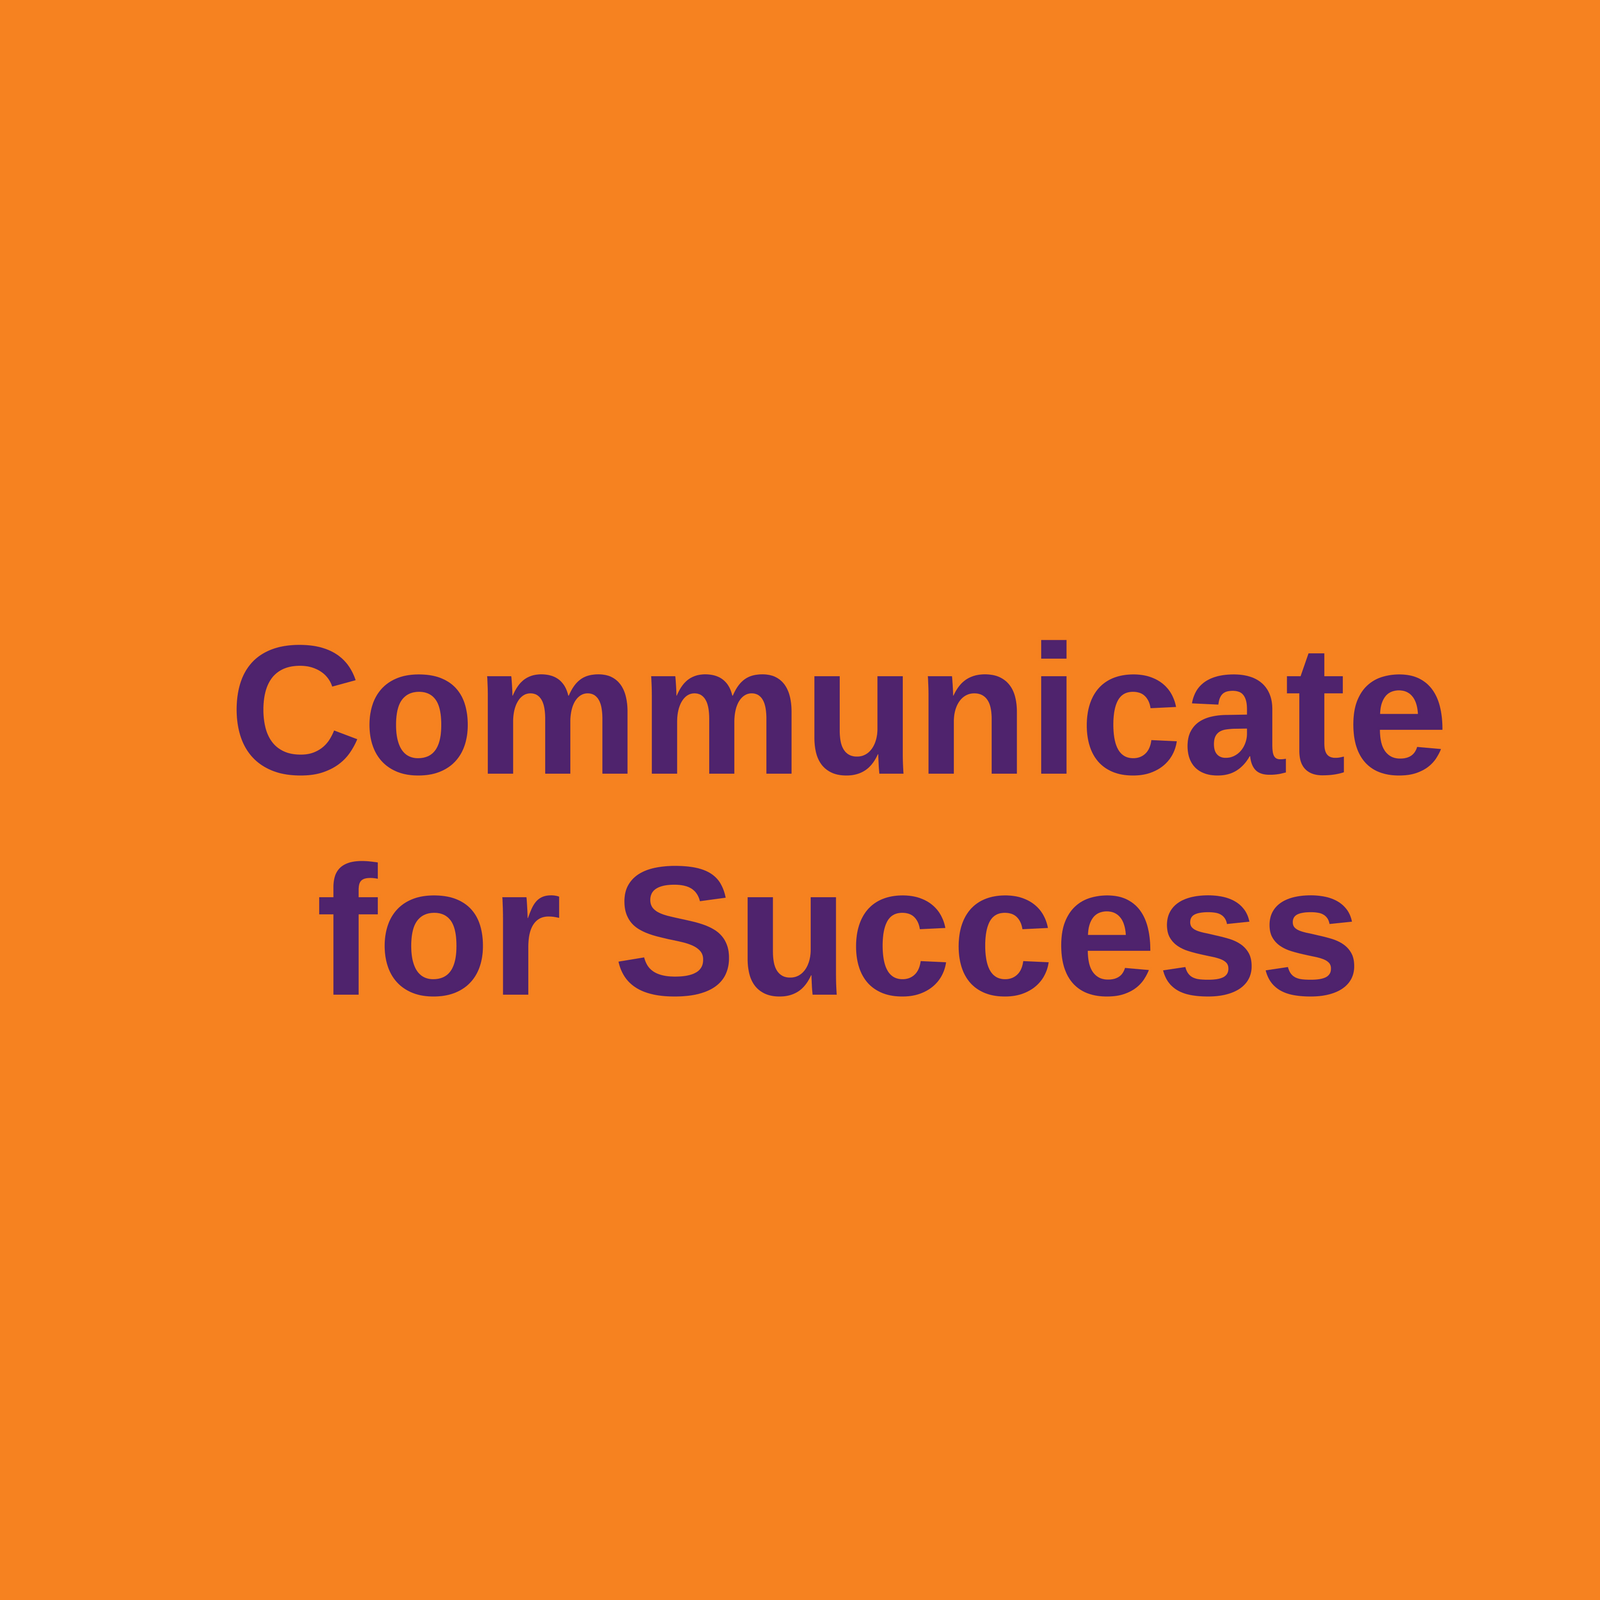 communicate for success